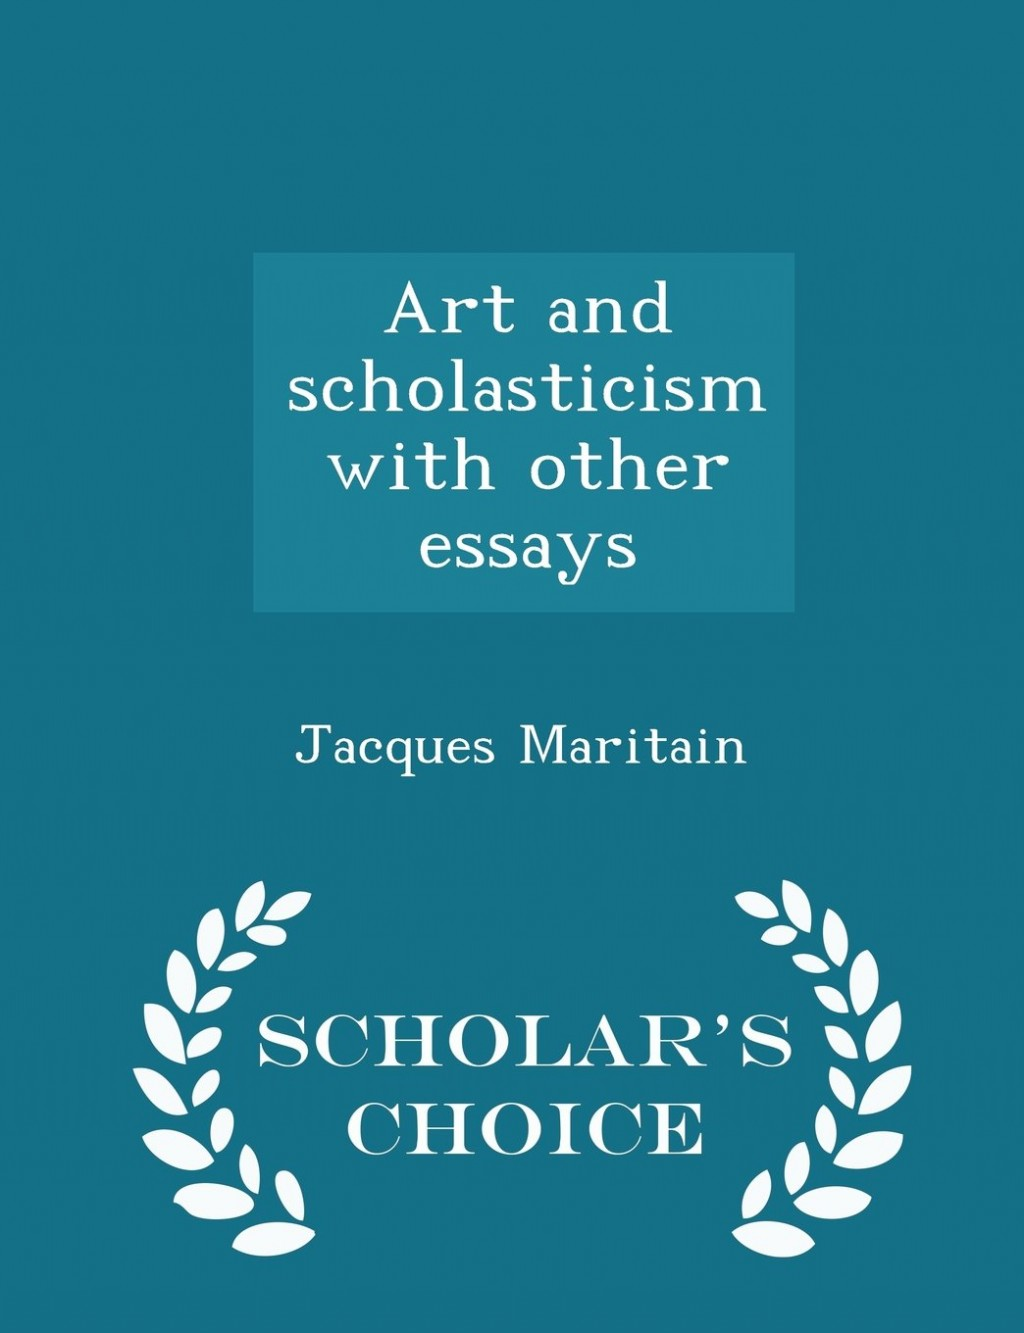 008 Essay Example Art And Scholasticism With Other Essays 61jp7 Impressive Large